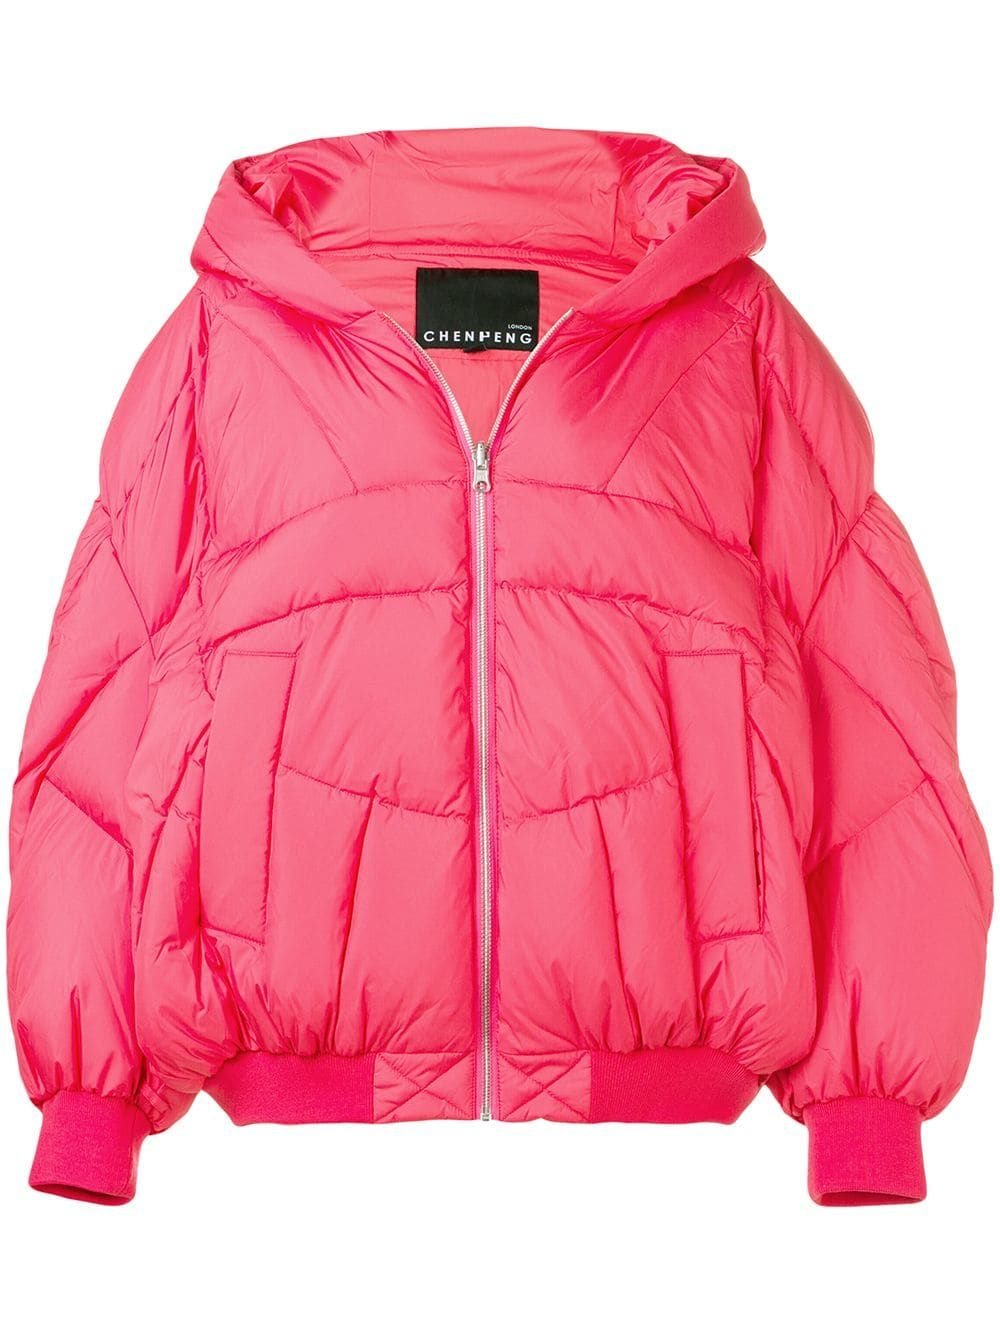 2a4c5f1f2 Cheng Peng hooded puffer jacket - Pink in 2019   Products   Puffer ...